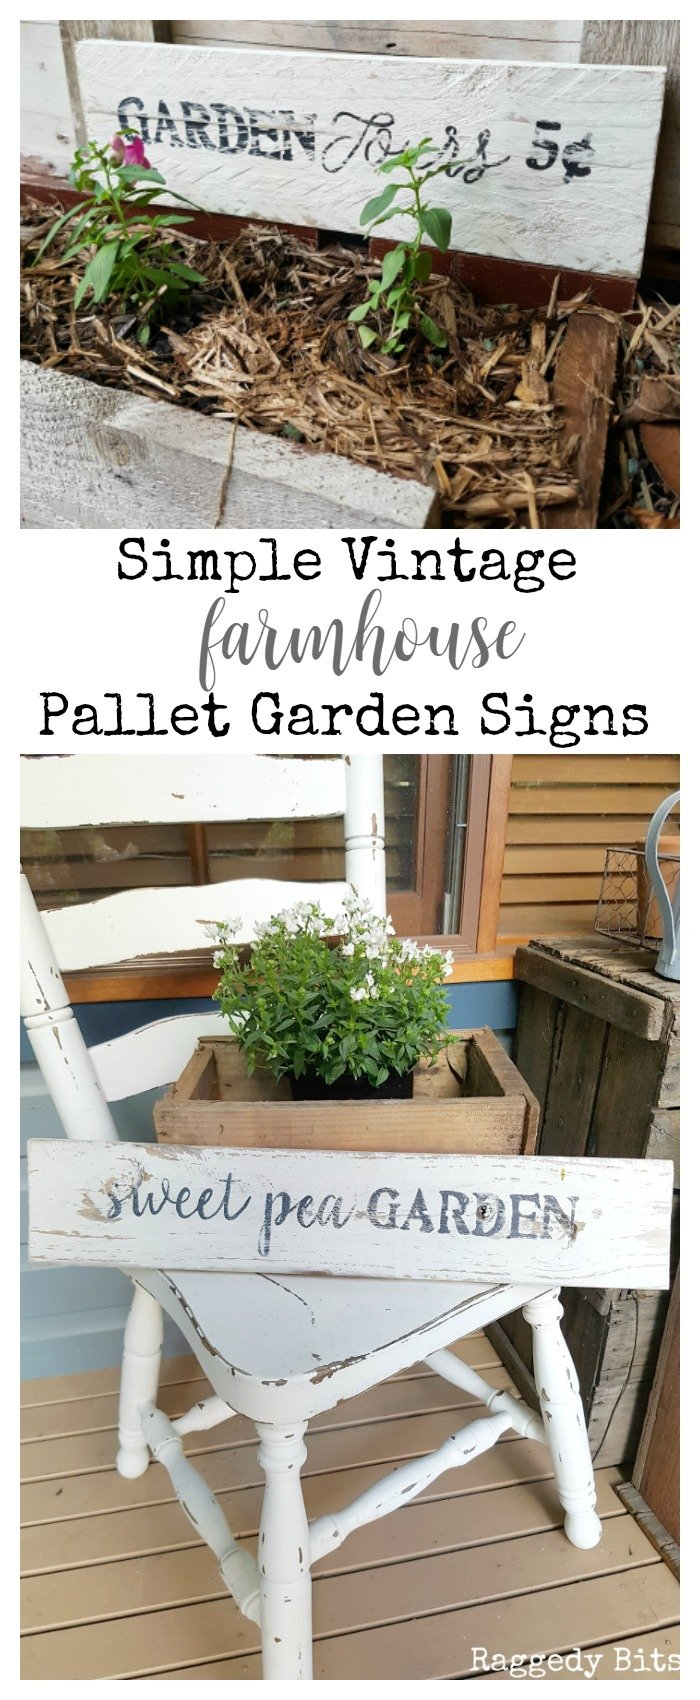 Sharing how to make some Simple Vintage Farmhouse Pallet Garden Signs to add to your garden | Full tutorial | www.raggedy-bits.com